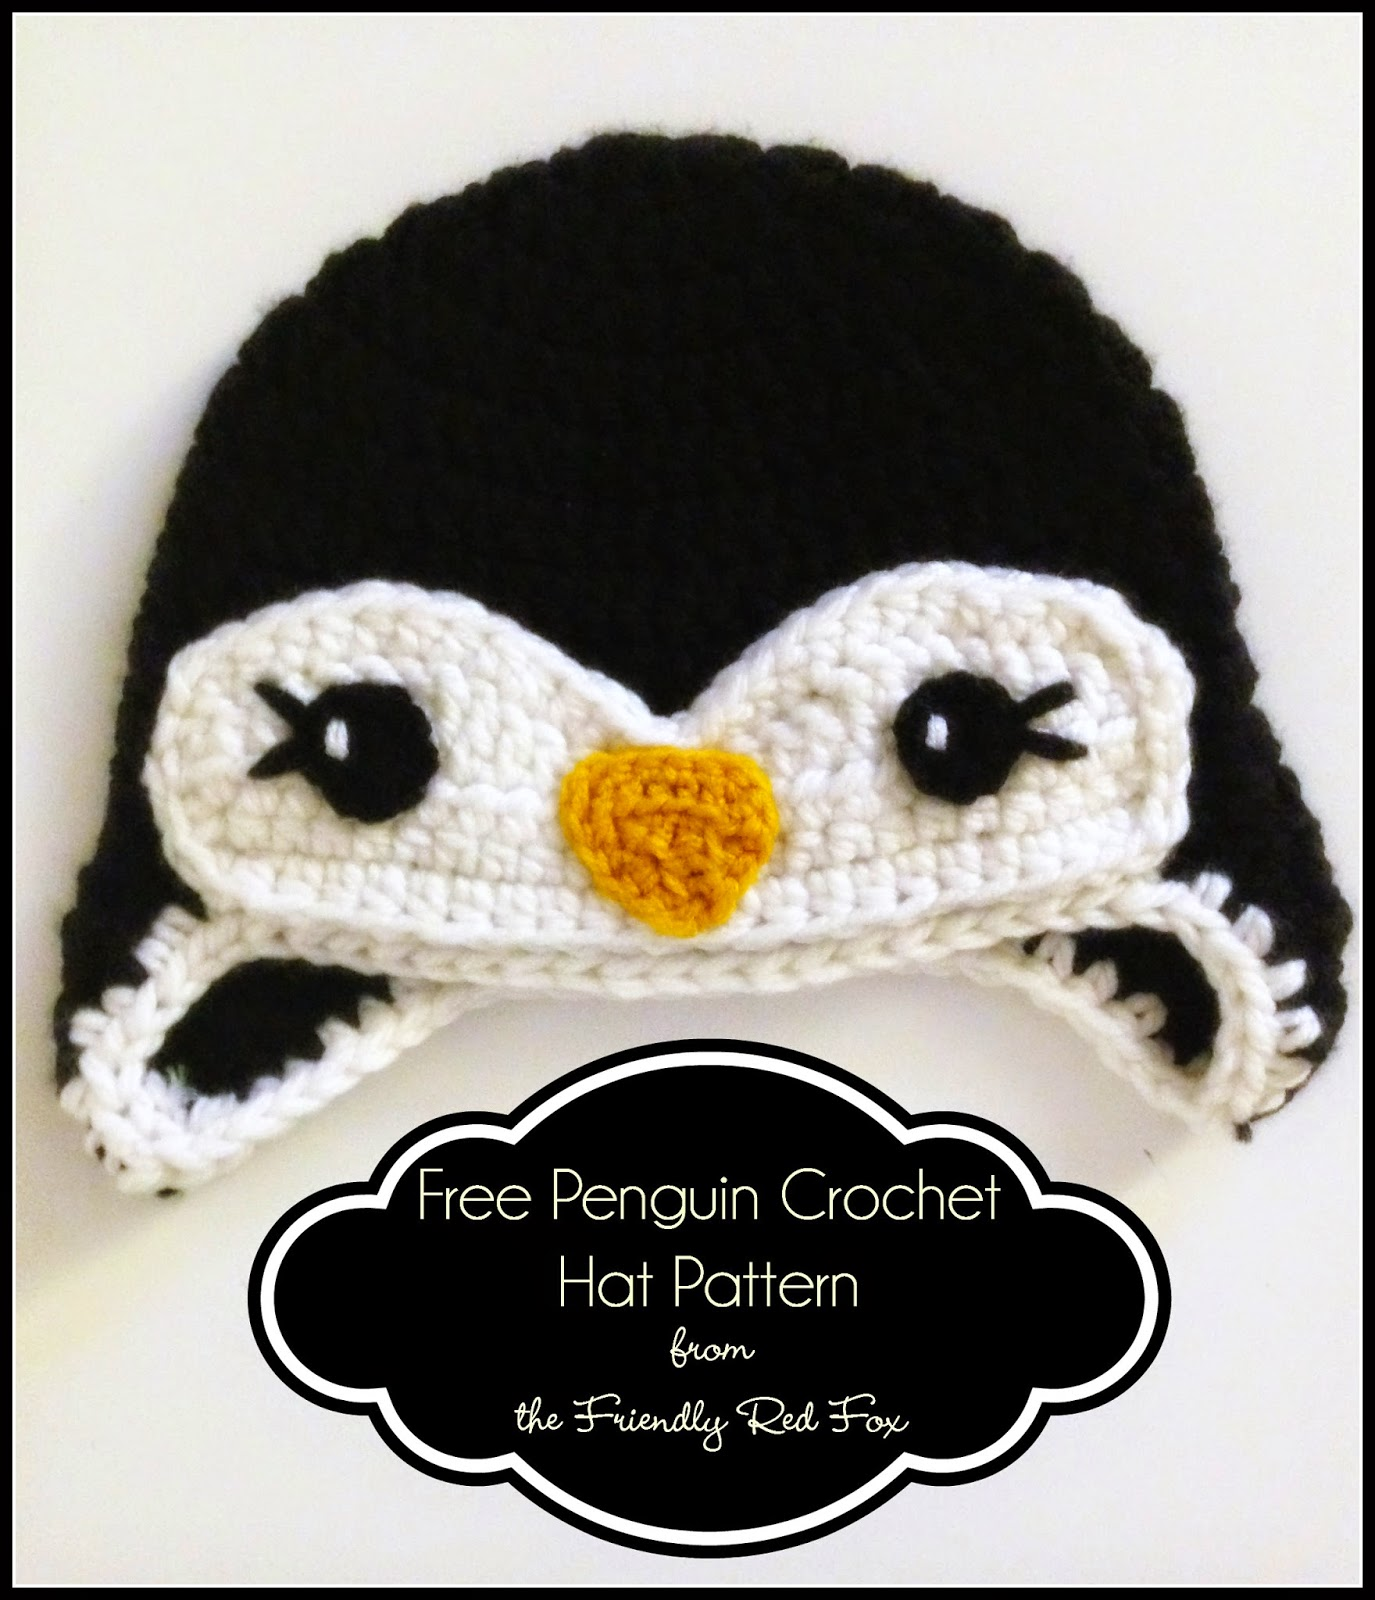 Free Penguin Crochet Hat Pattern